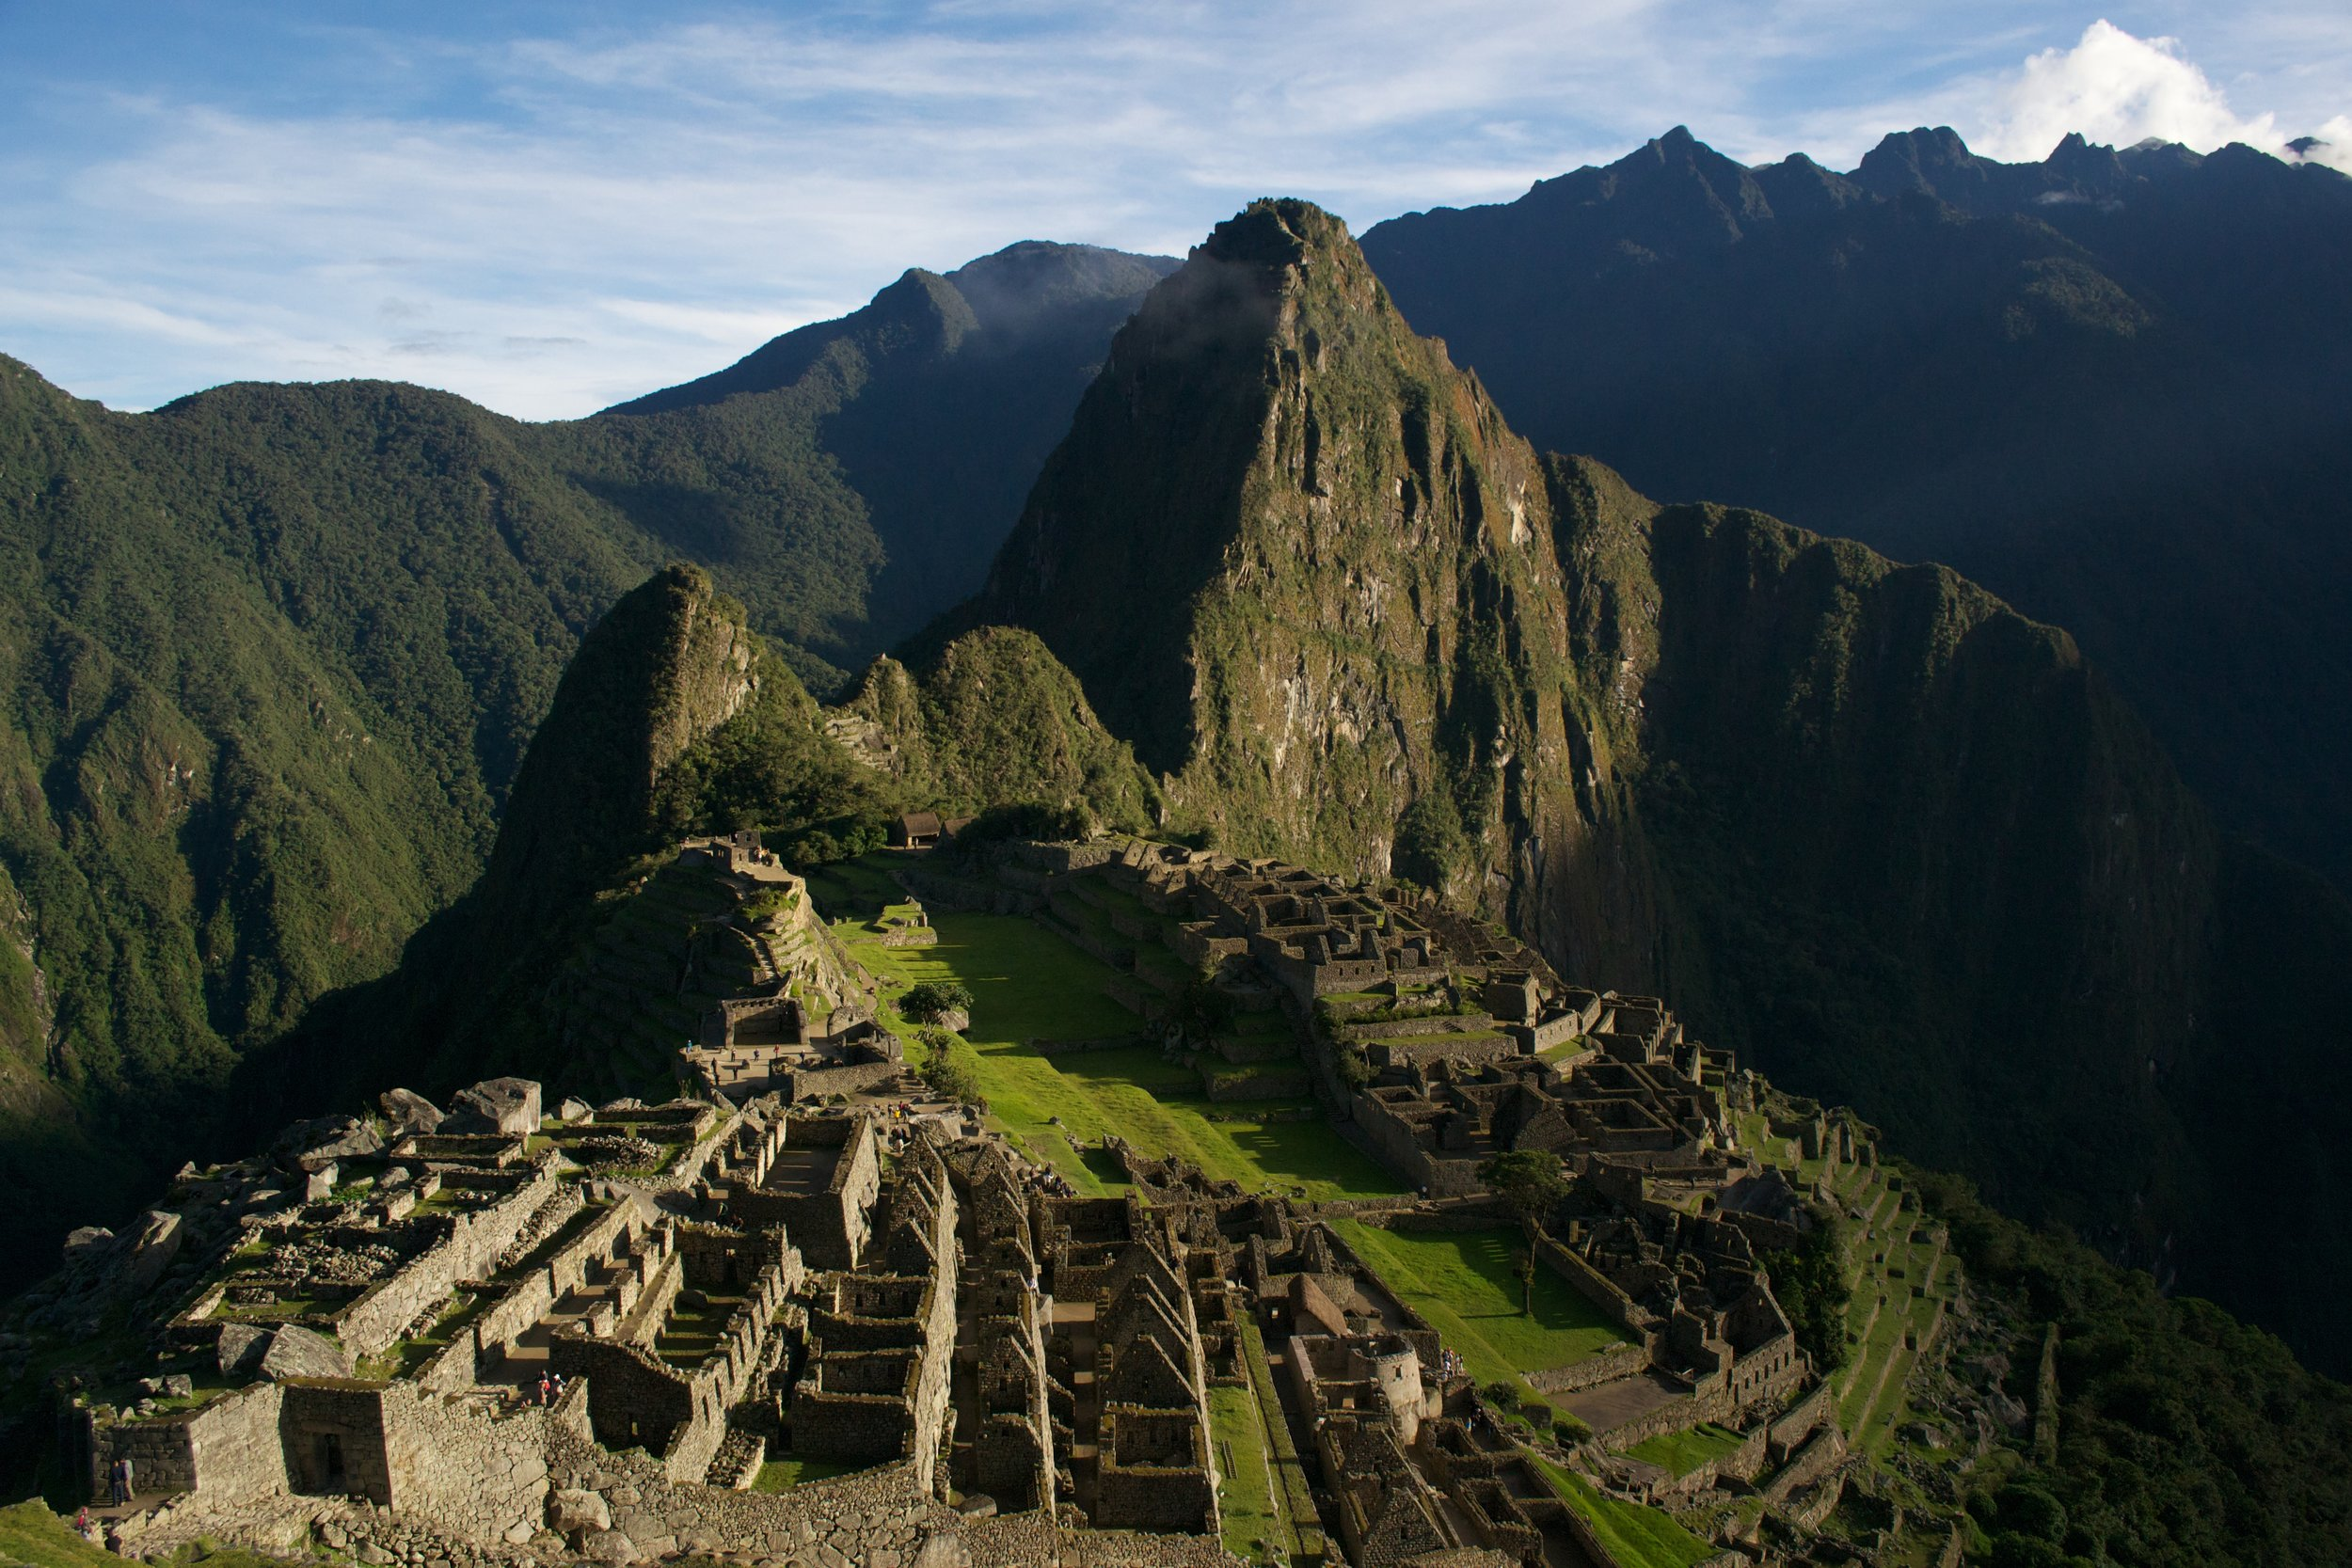 South America   See exciting cities, astounding archaeological remains and striking natural wonders in South America. Walk amid the ruins of the Incan city of Machu Picchu in Peru, for example, or explore the remote and wild Amazon region. Take a vacation that covers the top tourist sites while also giving you a deeper understanding of the local culture. Save valuable dollars by using the tours company's negotiated rates on hotels, transportation and activities.